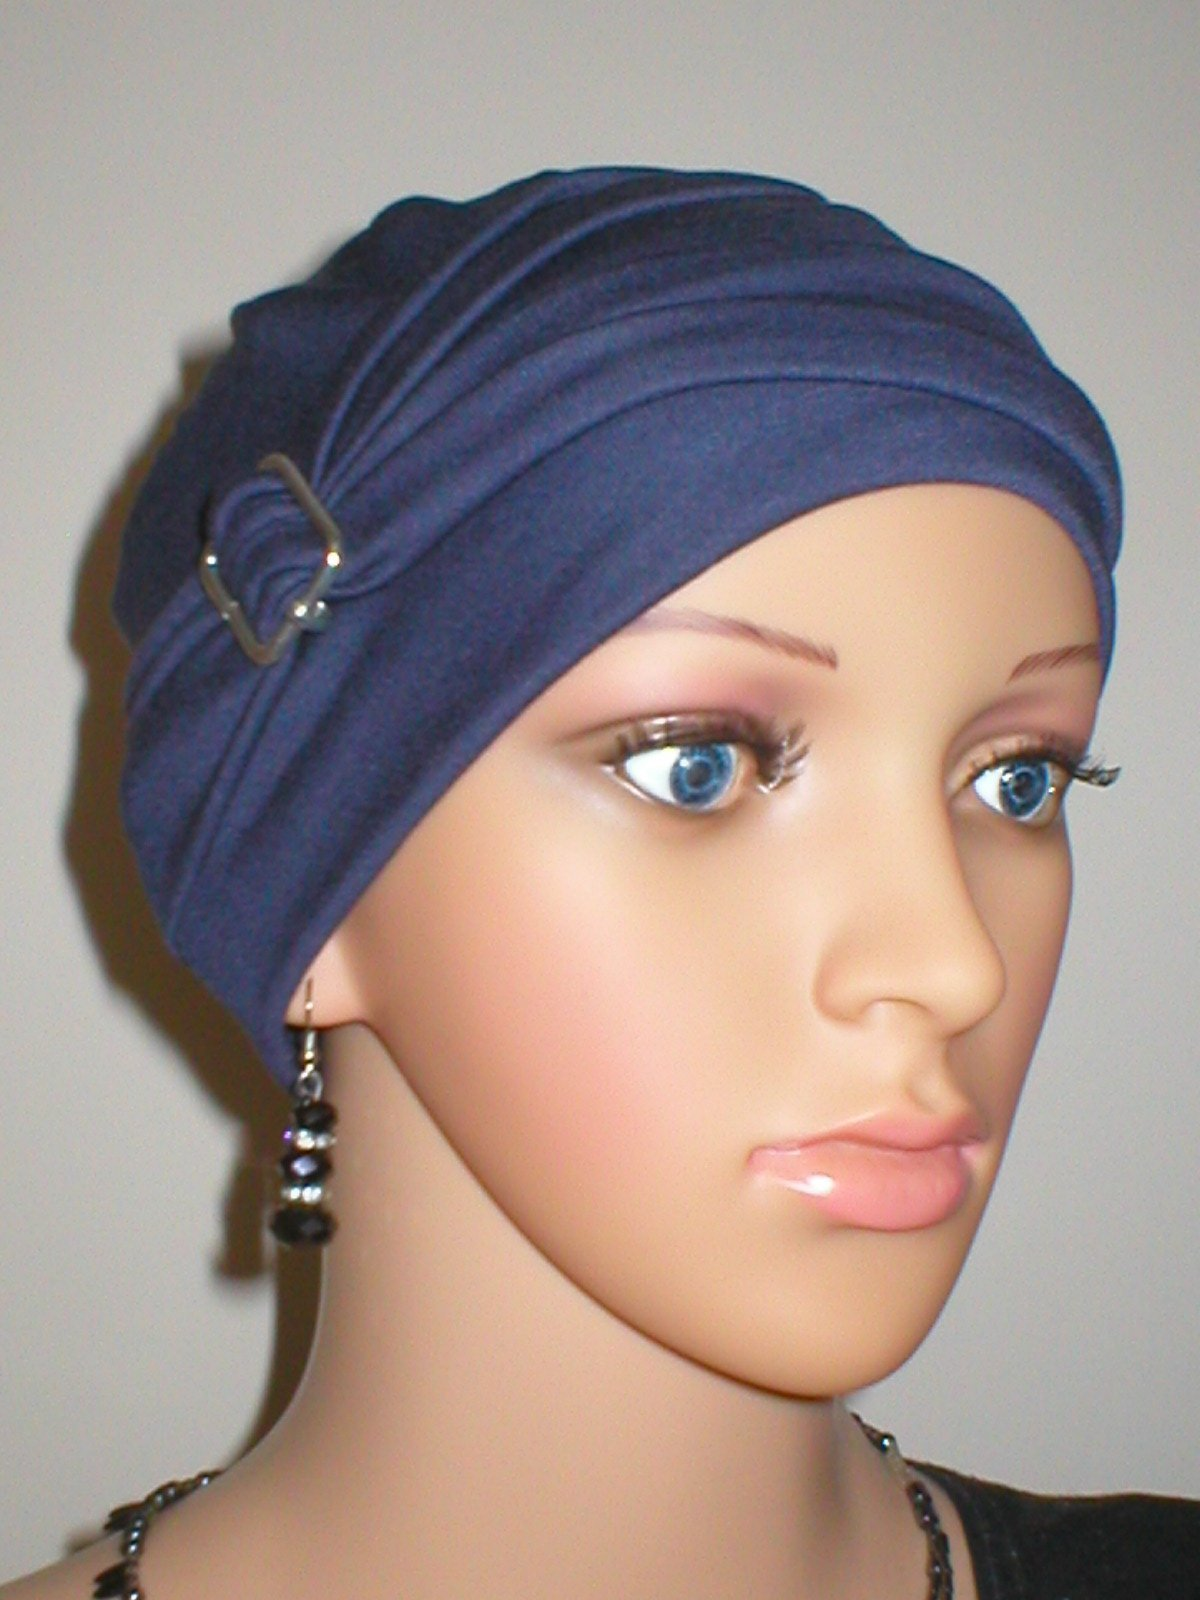 chemotherapy hats